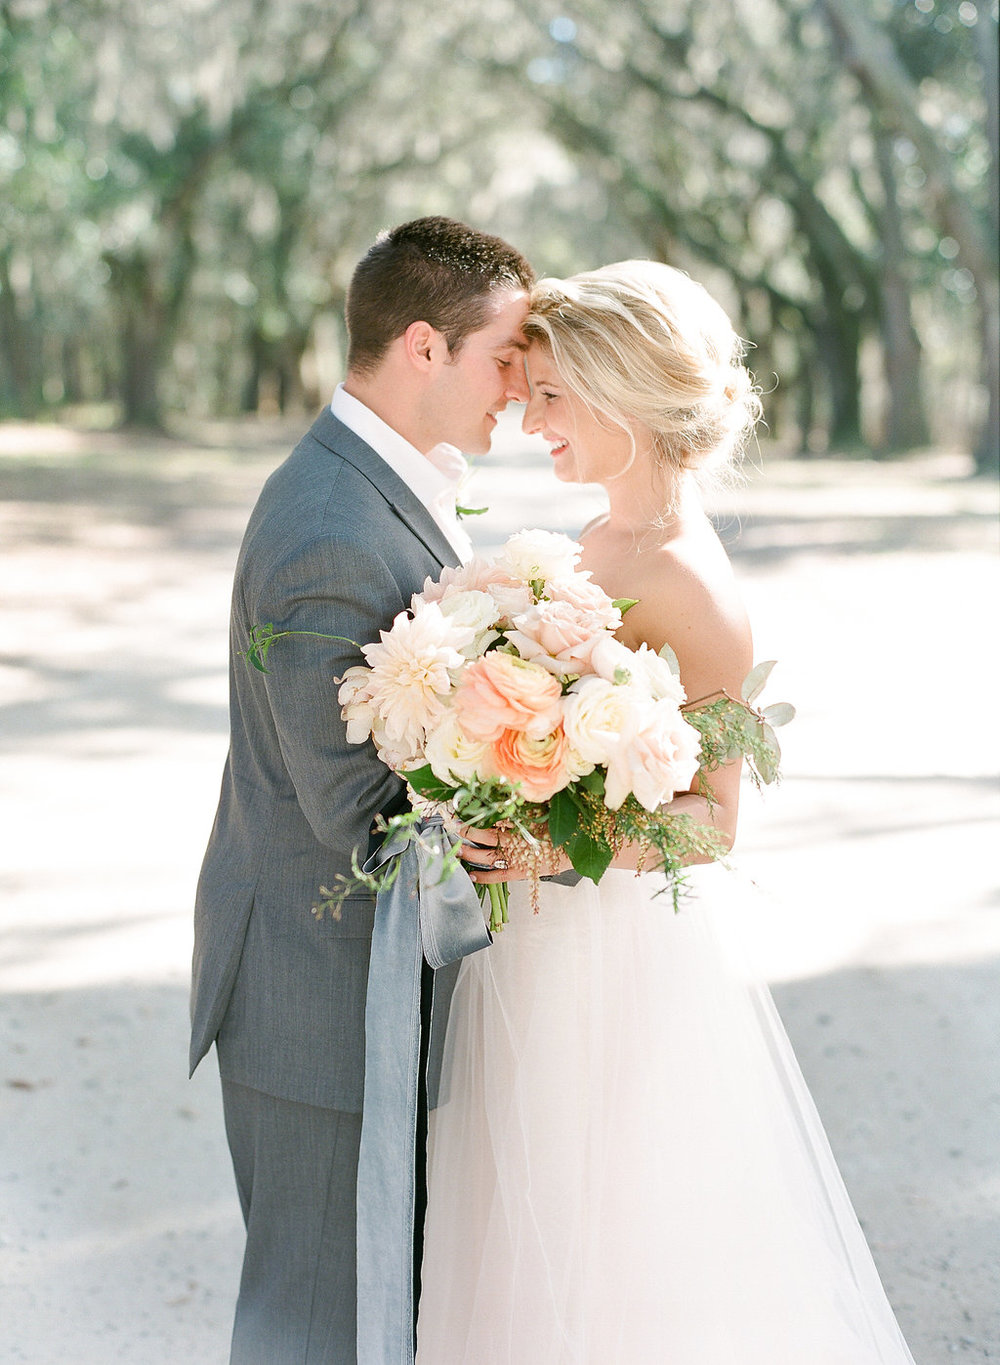 the-happy-bloom-wormsloe-wedding-savannah-wedding-ivory-and-beau-bridal-boutique-savannah-wedding-dresses-savannah-bridal-boutique-georgia-bridal-boutique-design-studio-south-sunset-wedding-blush-by-hayley-paige-candi-1550-blush-wedding-dress-17.jpg